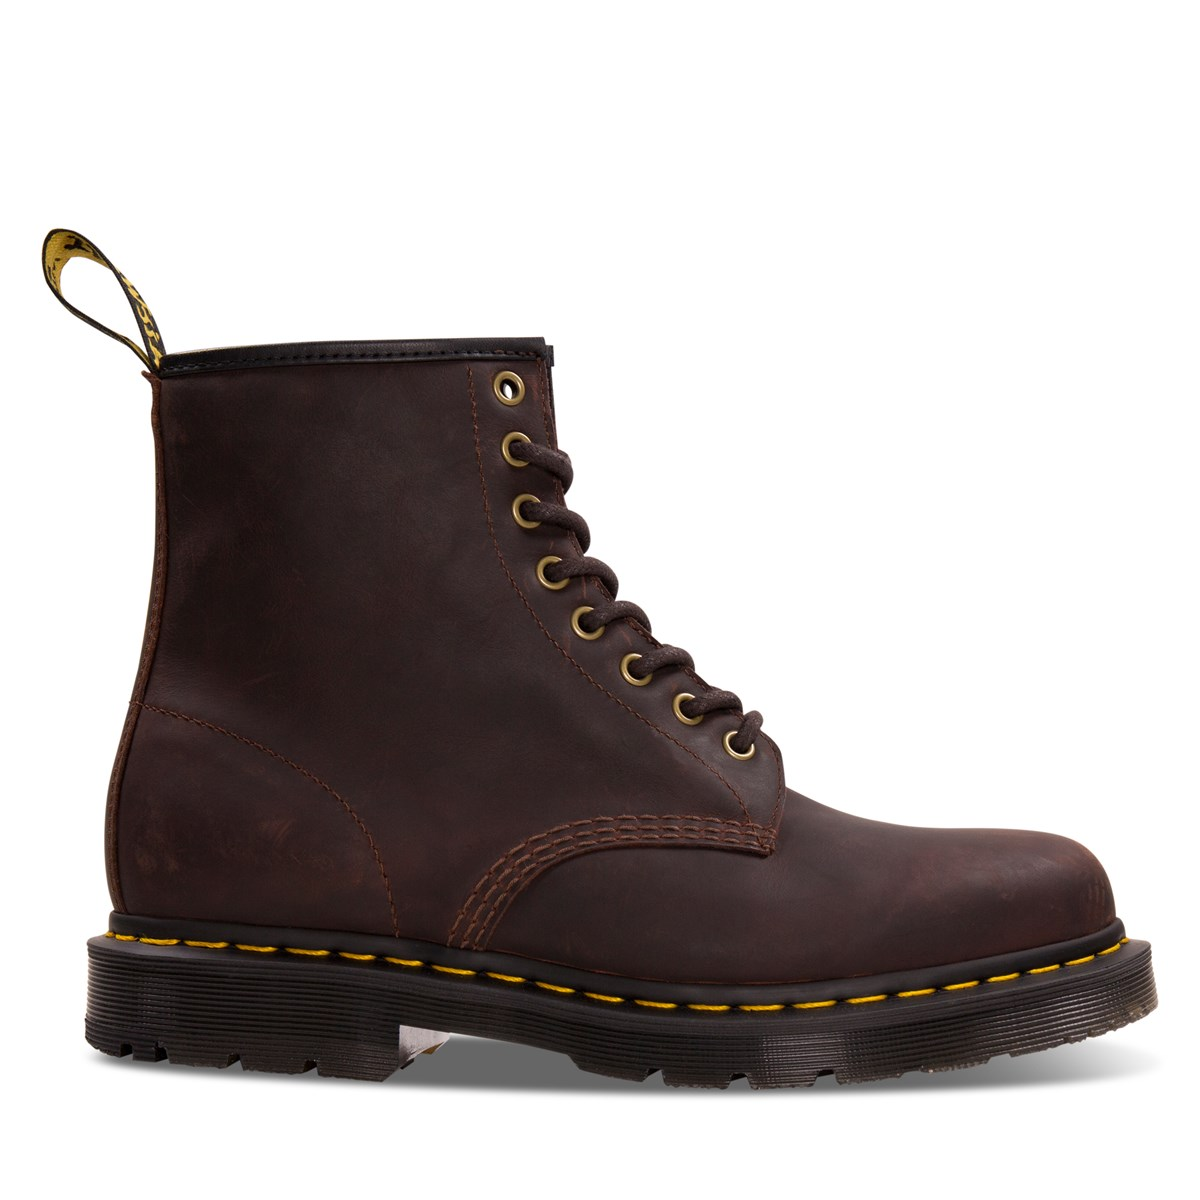 Men's 1460 Snowplow Boots in Brown